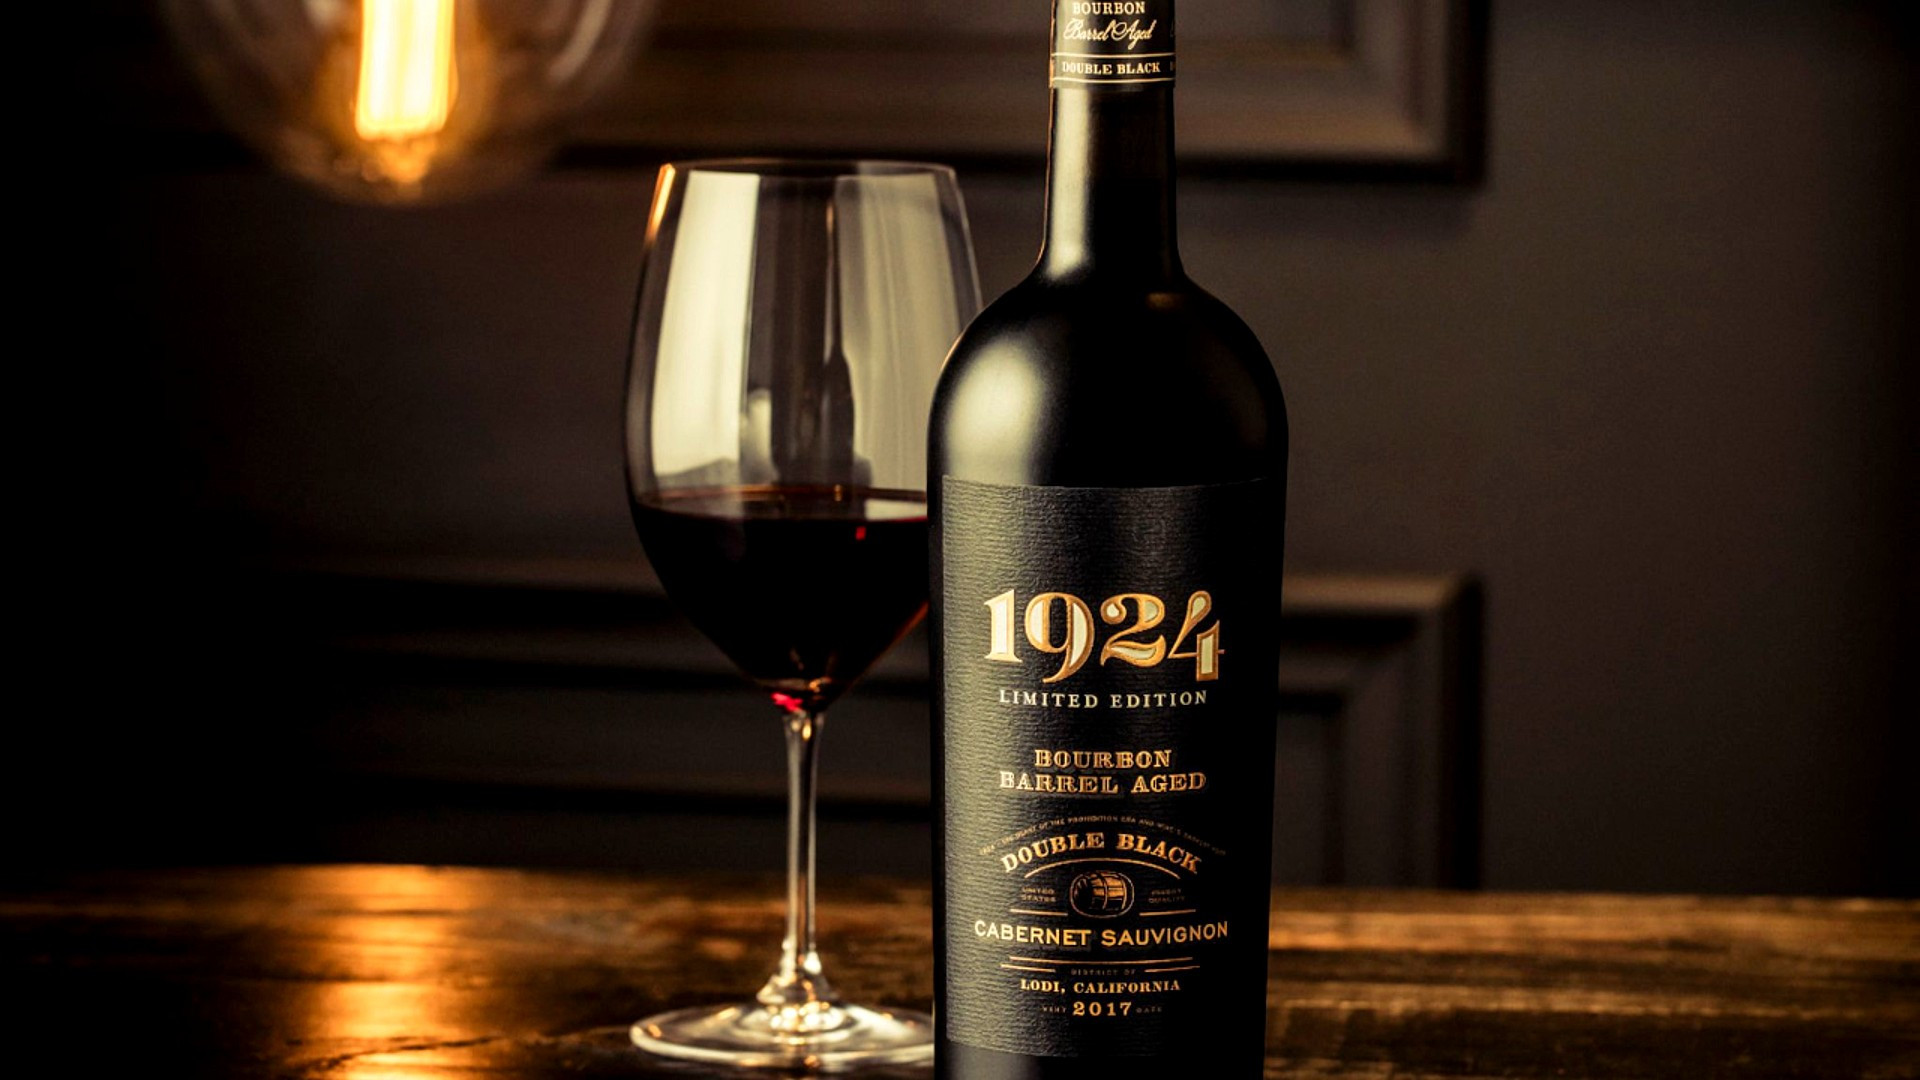 Gnarly Head's 1924 Cabernet Sauvignon